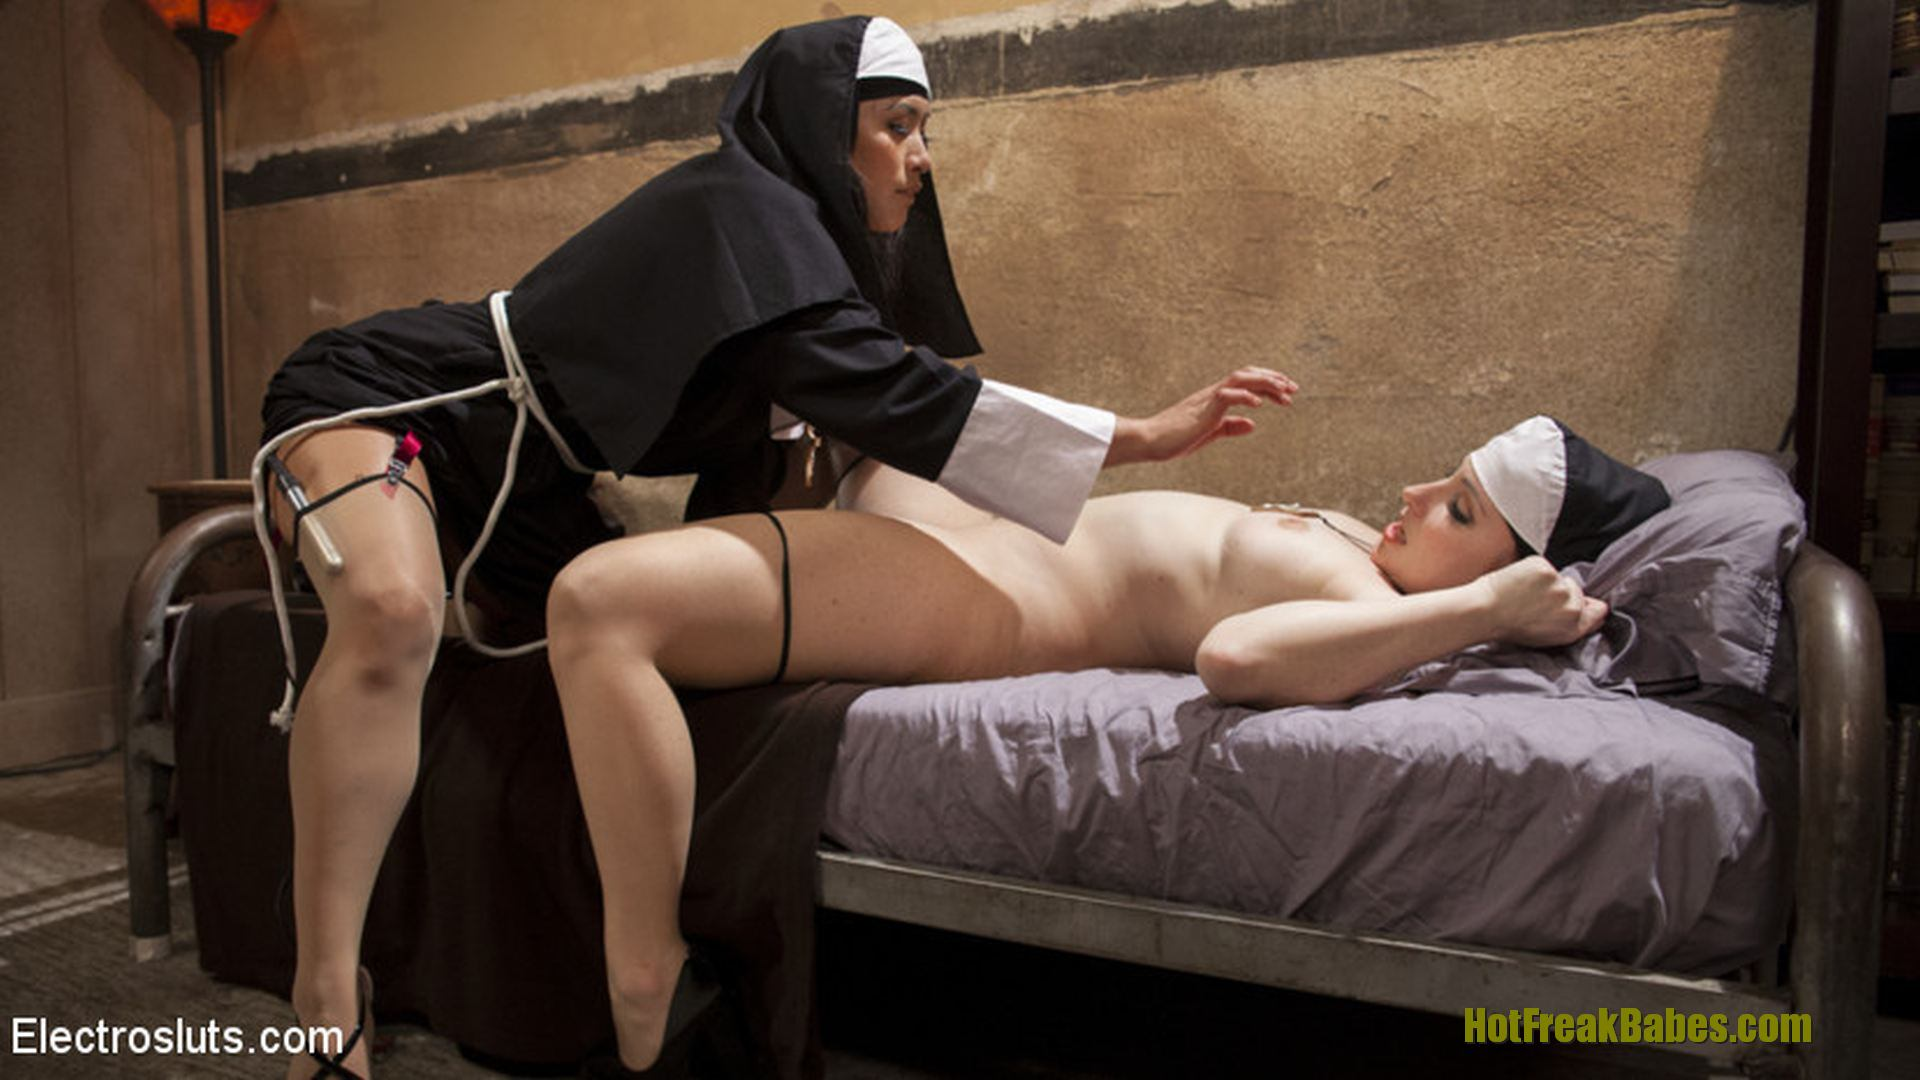 Can suggest Lesbian nun video speaking